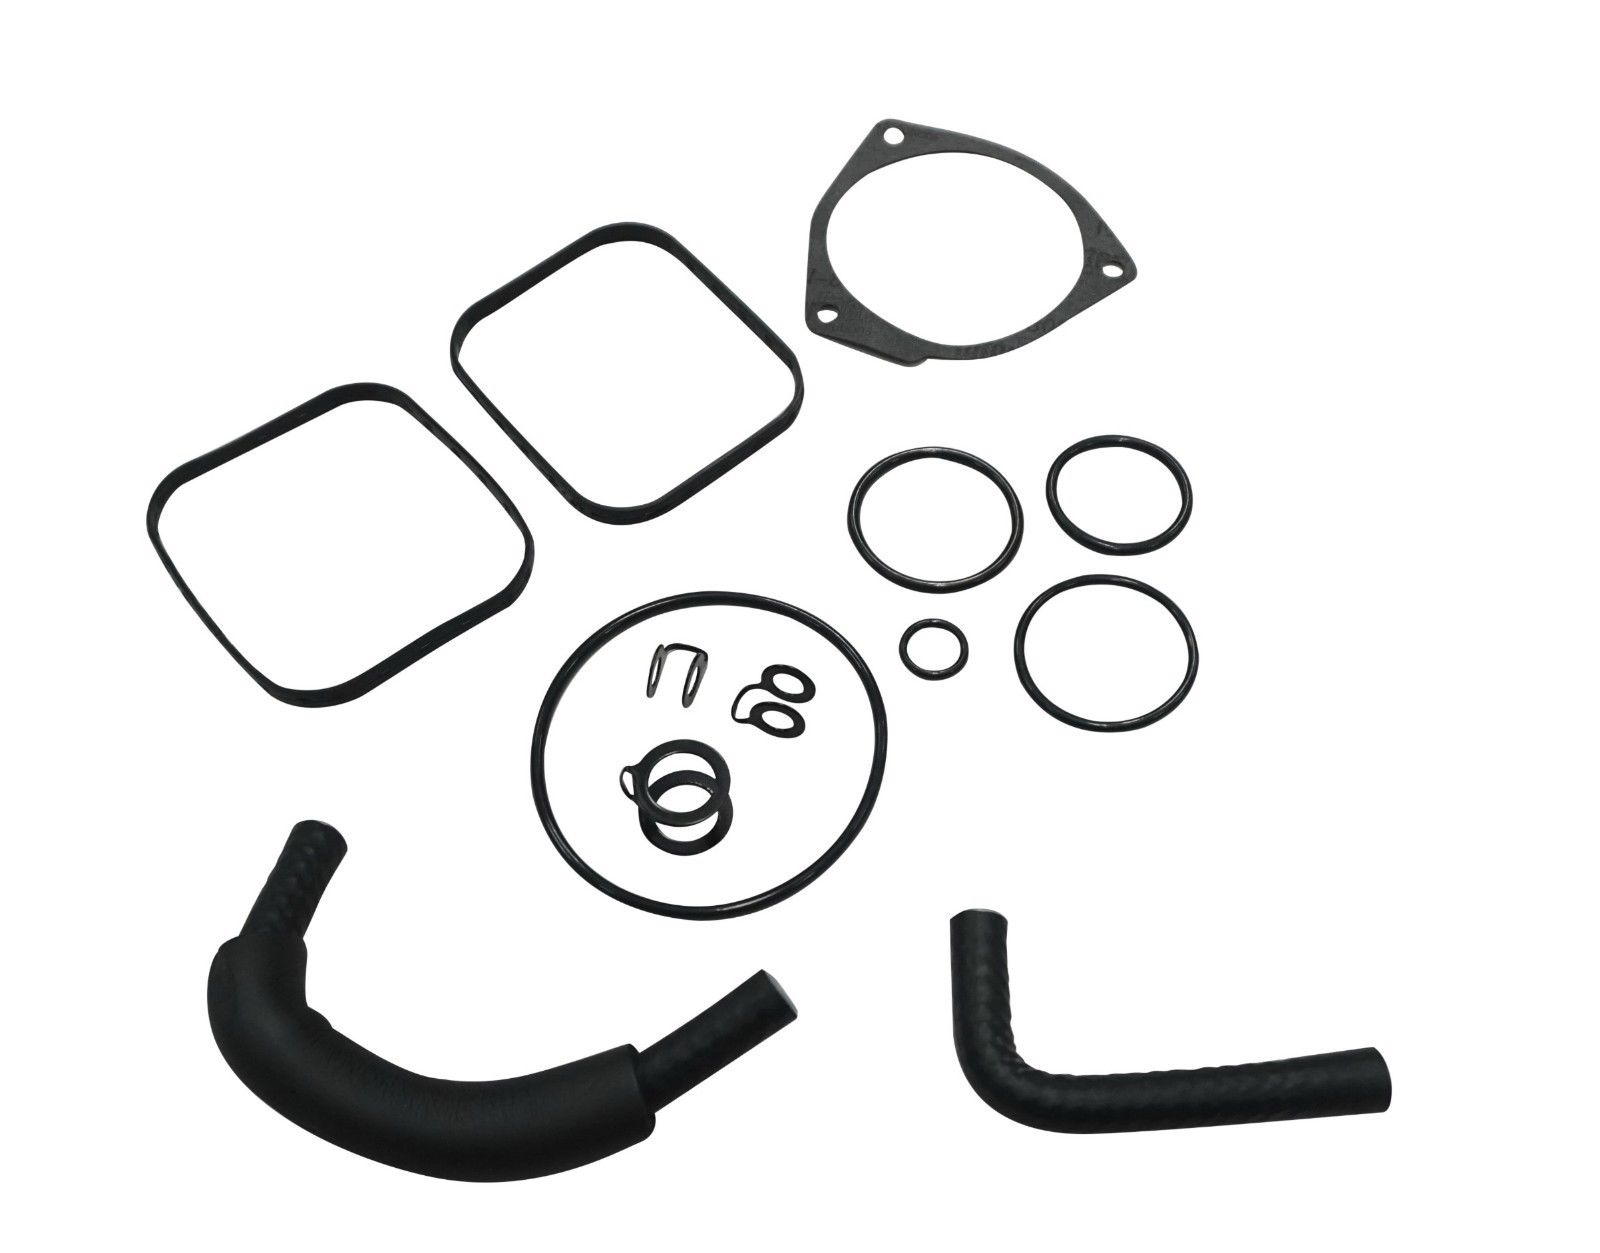 CP3 Fuel Injection Pump Install Gasket Kit For 01-04 6.6L LB7 Chevy/GMC Duramax Diesel